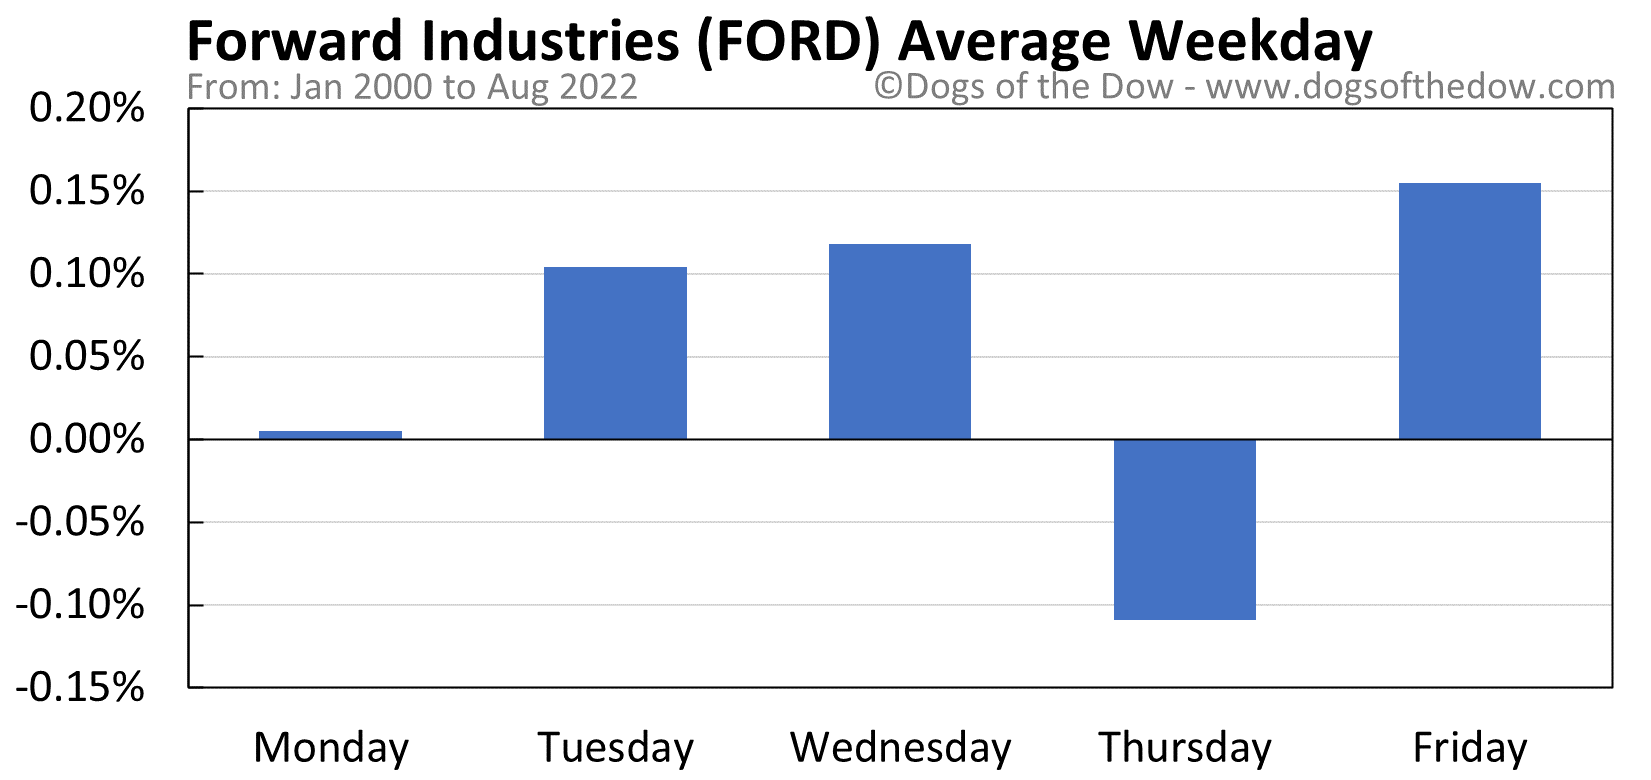 FORD average weekday chart